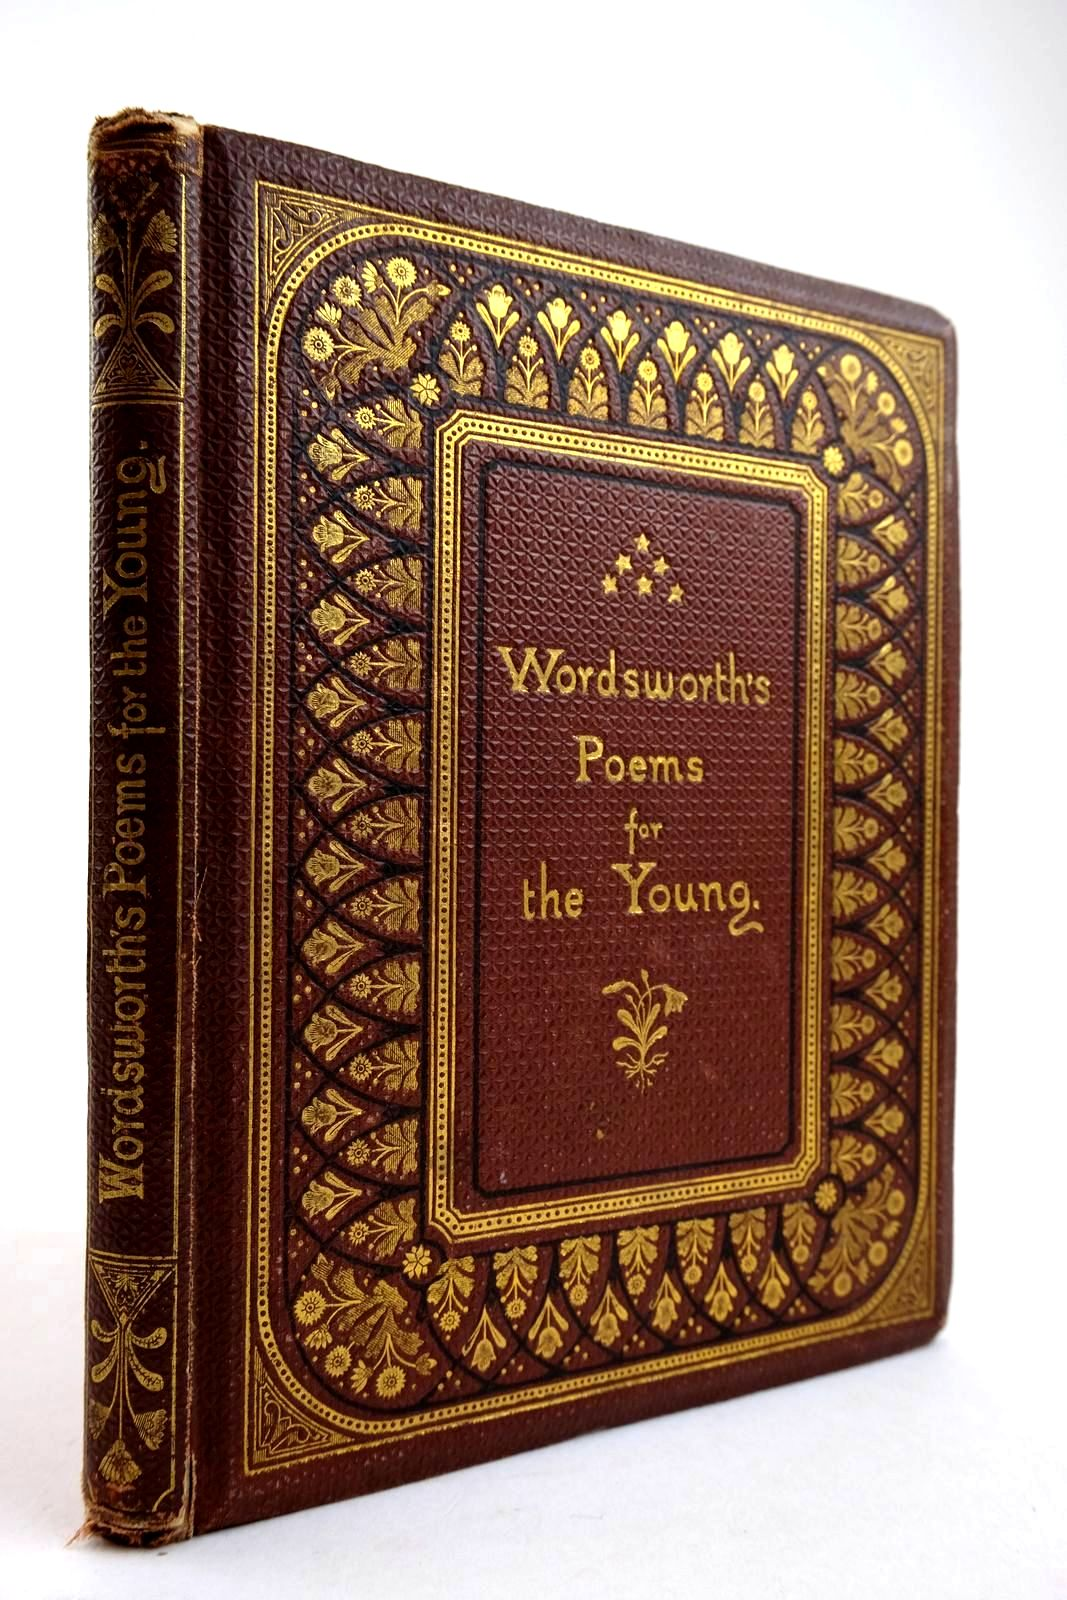 Photo of WORDSWORTH'S POEMS FOR THE YOUNG- Stock Number: 2134264